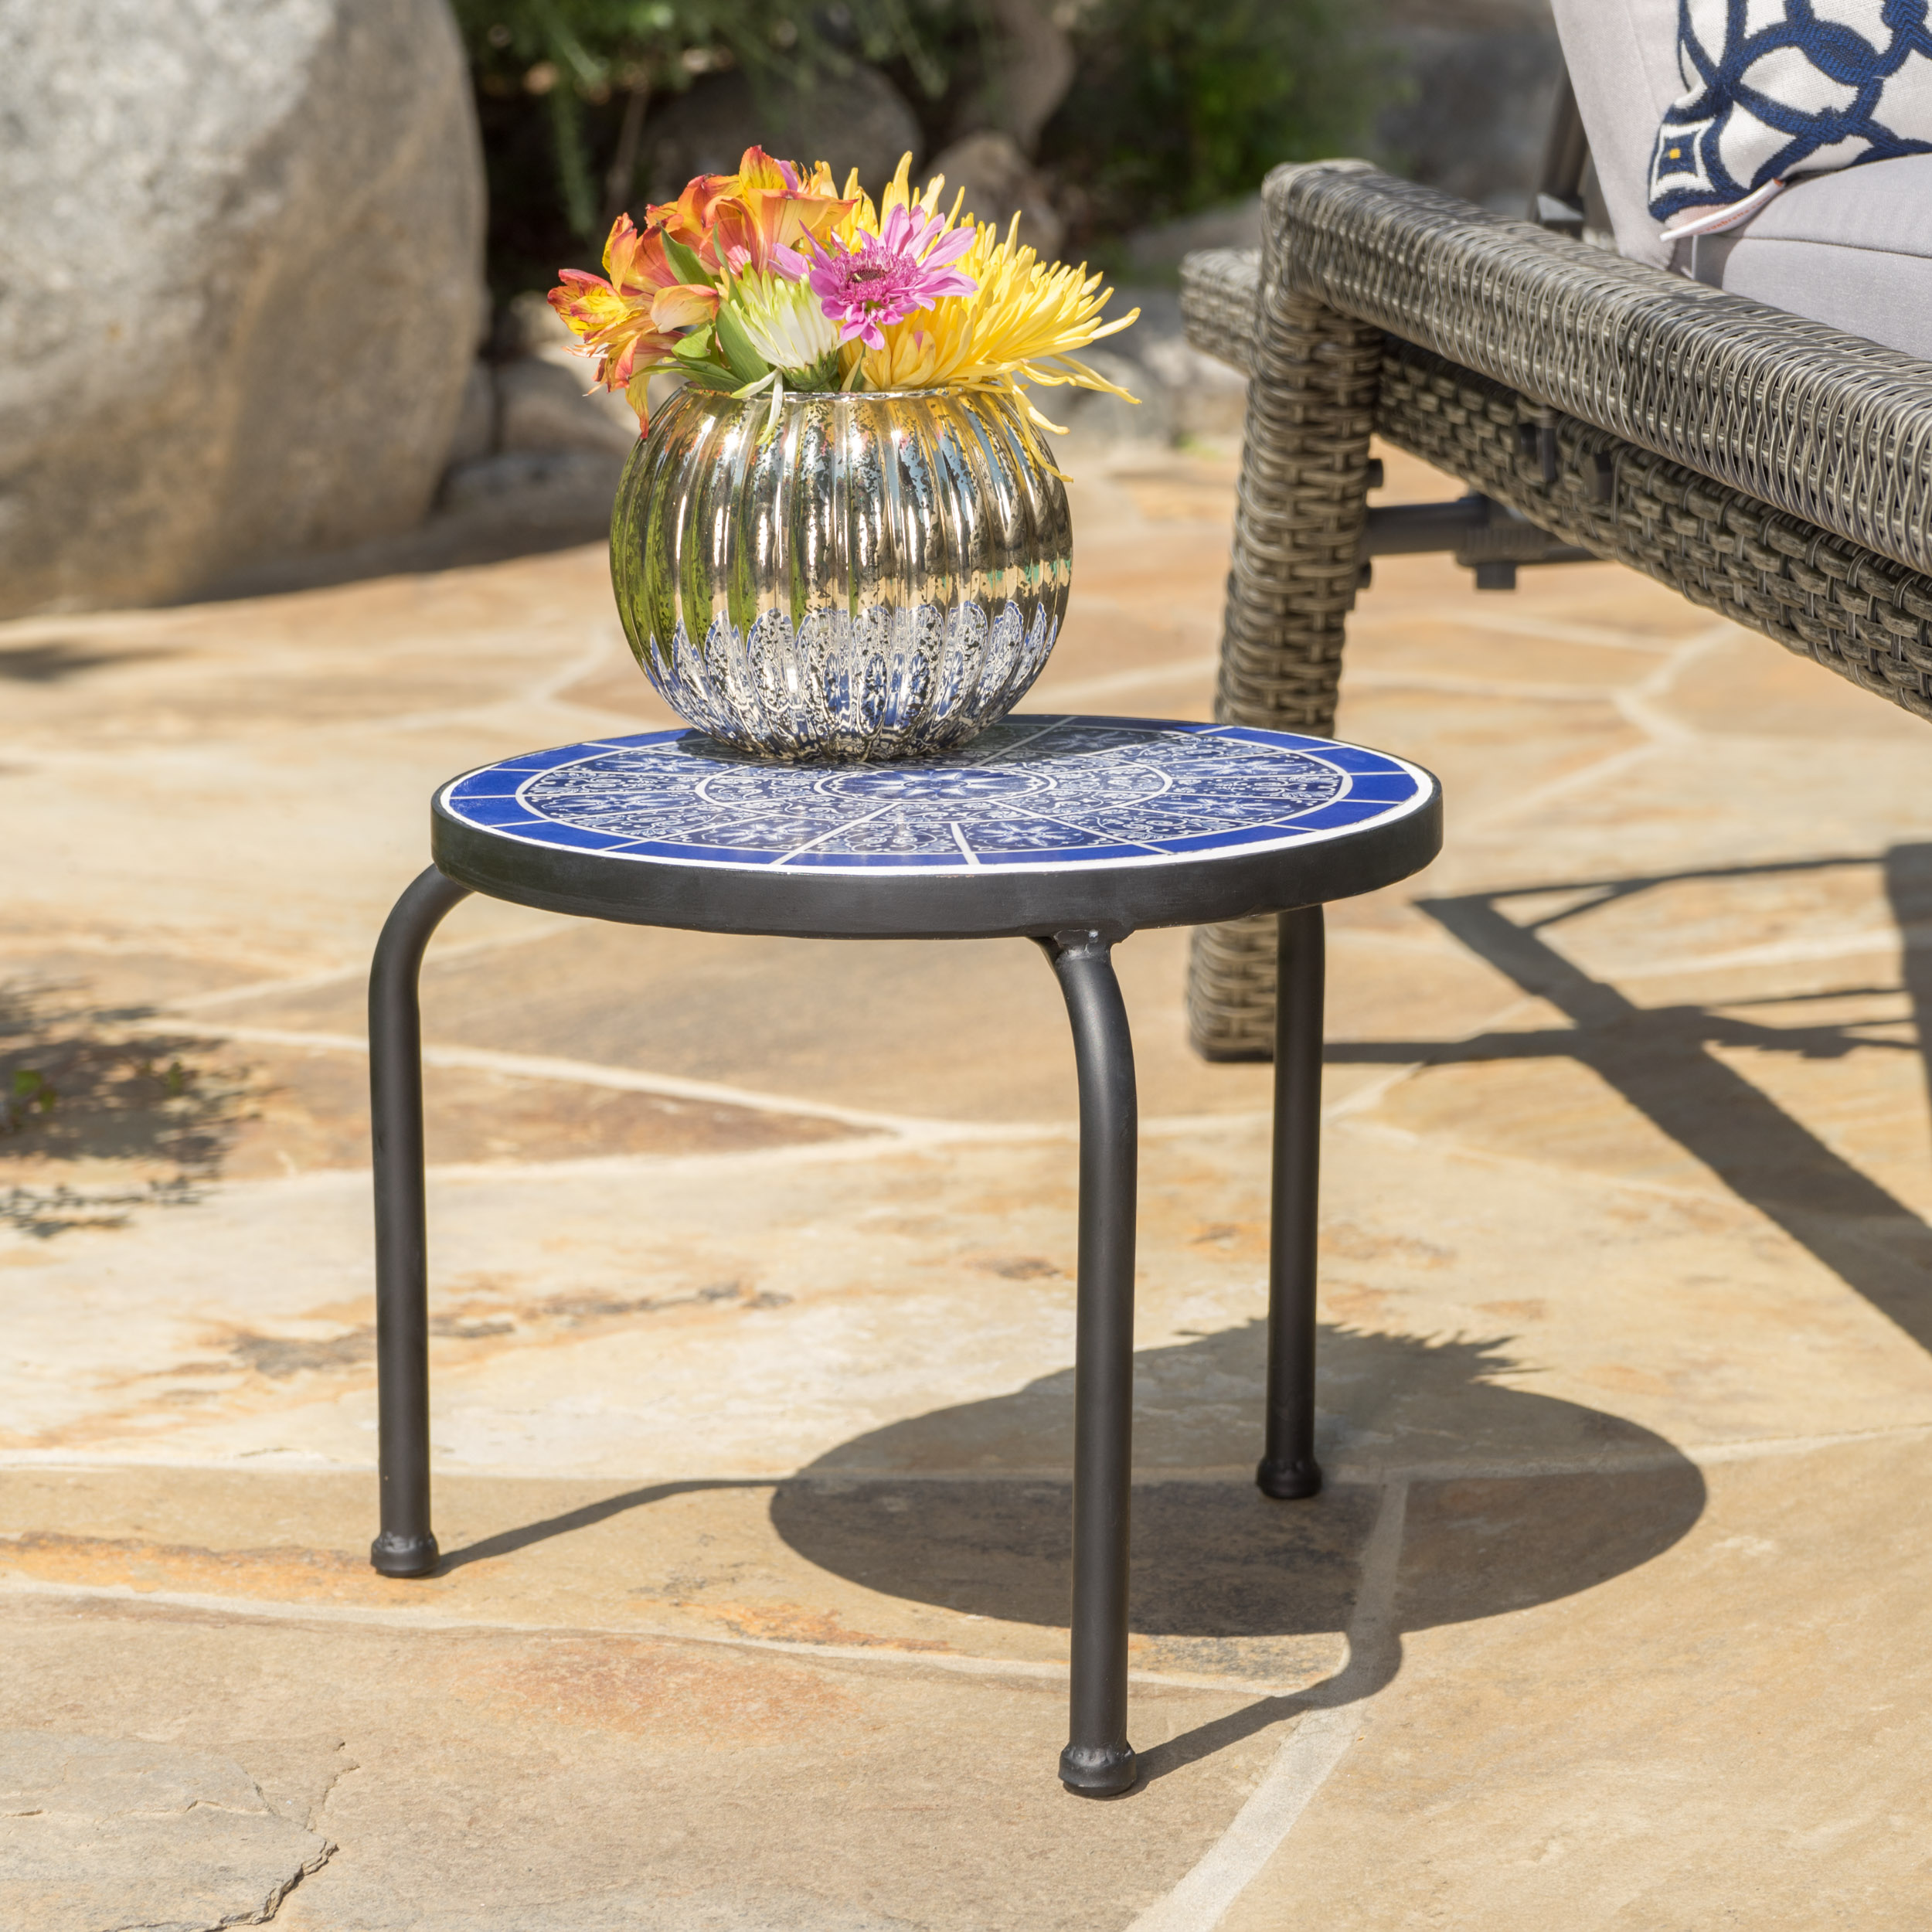 bryan outdoor ceramic tile side table with iron frame blue and white furniture chairs mirrored end target mila square accent portable massage silver round light shower head bar